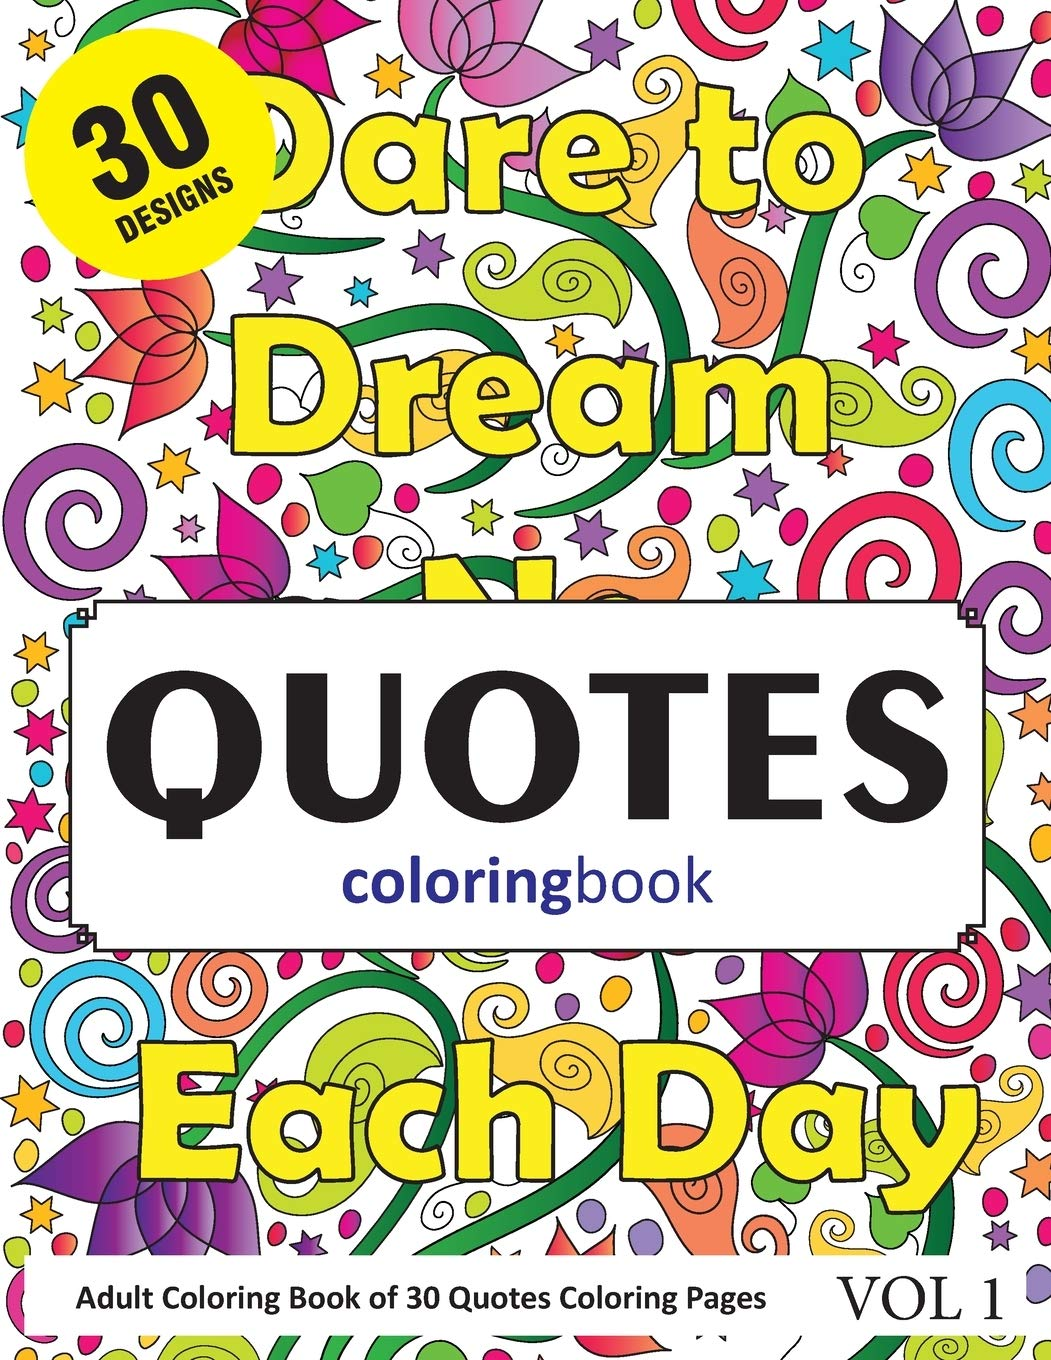 - Amazon.com: Quotes Coloring Book: 30 Coloring Pages Of Quotations